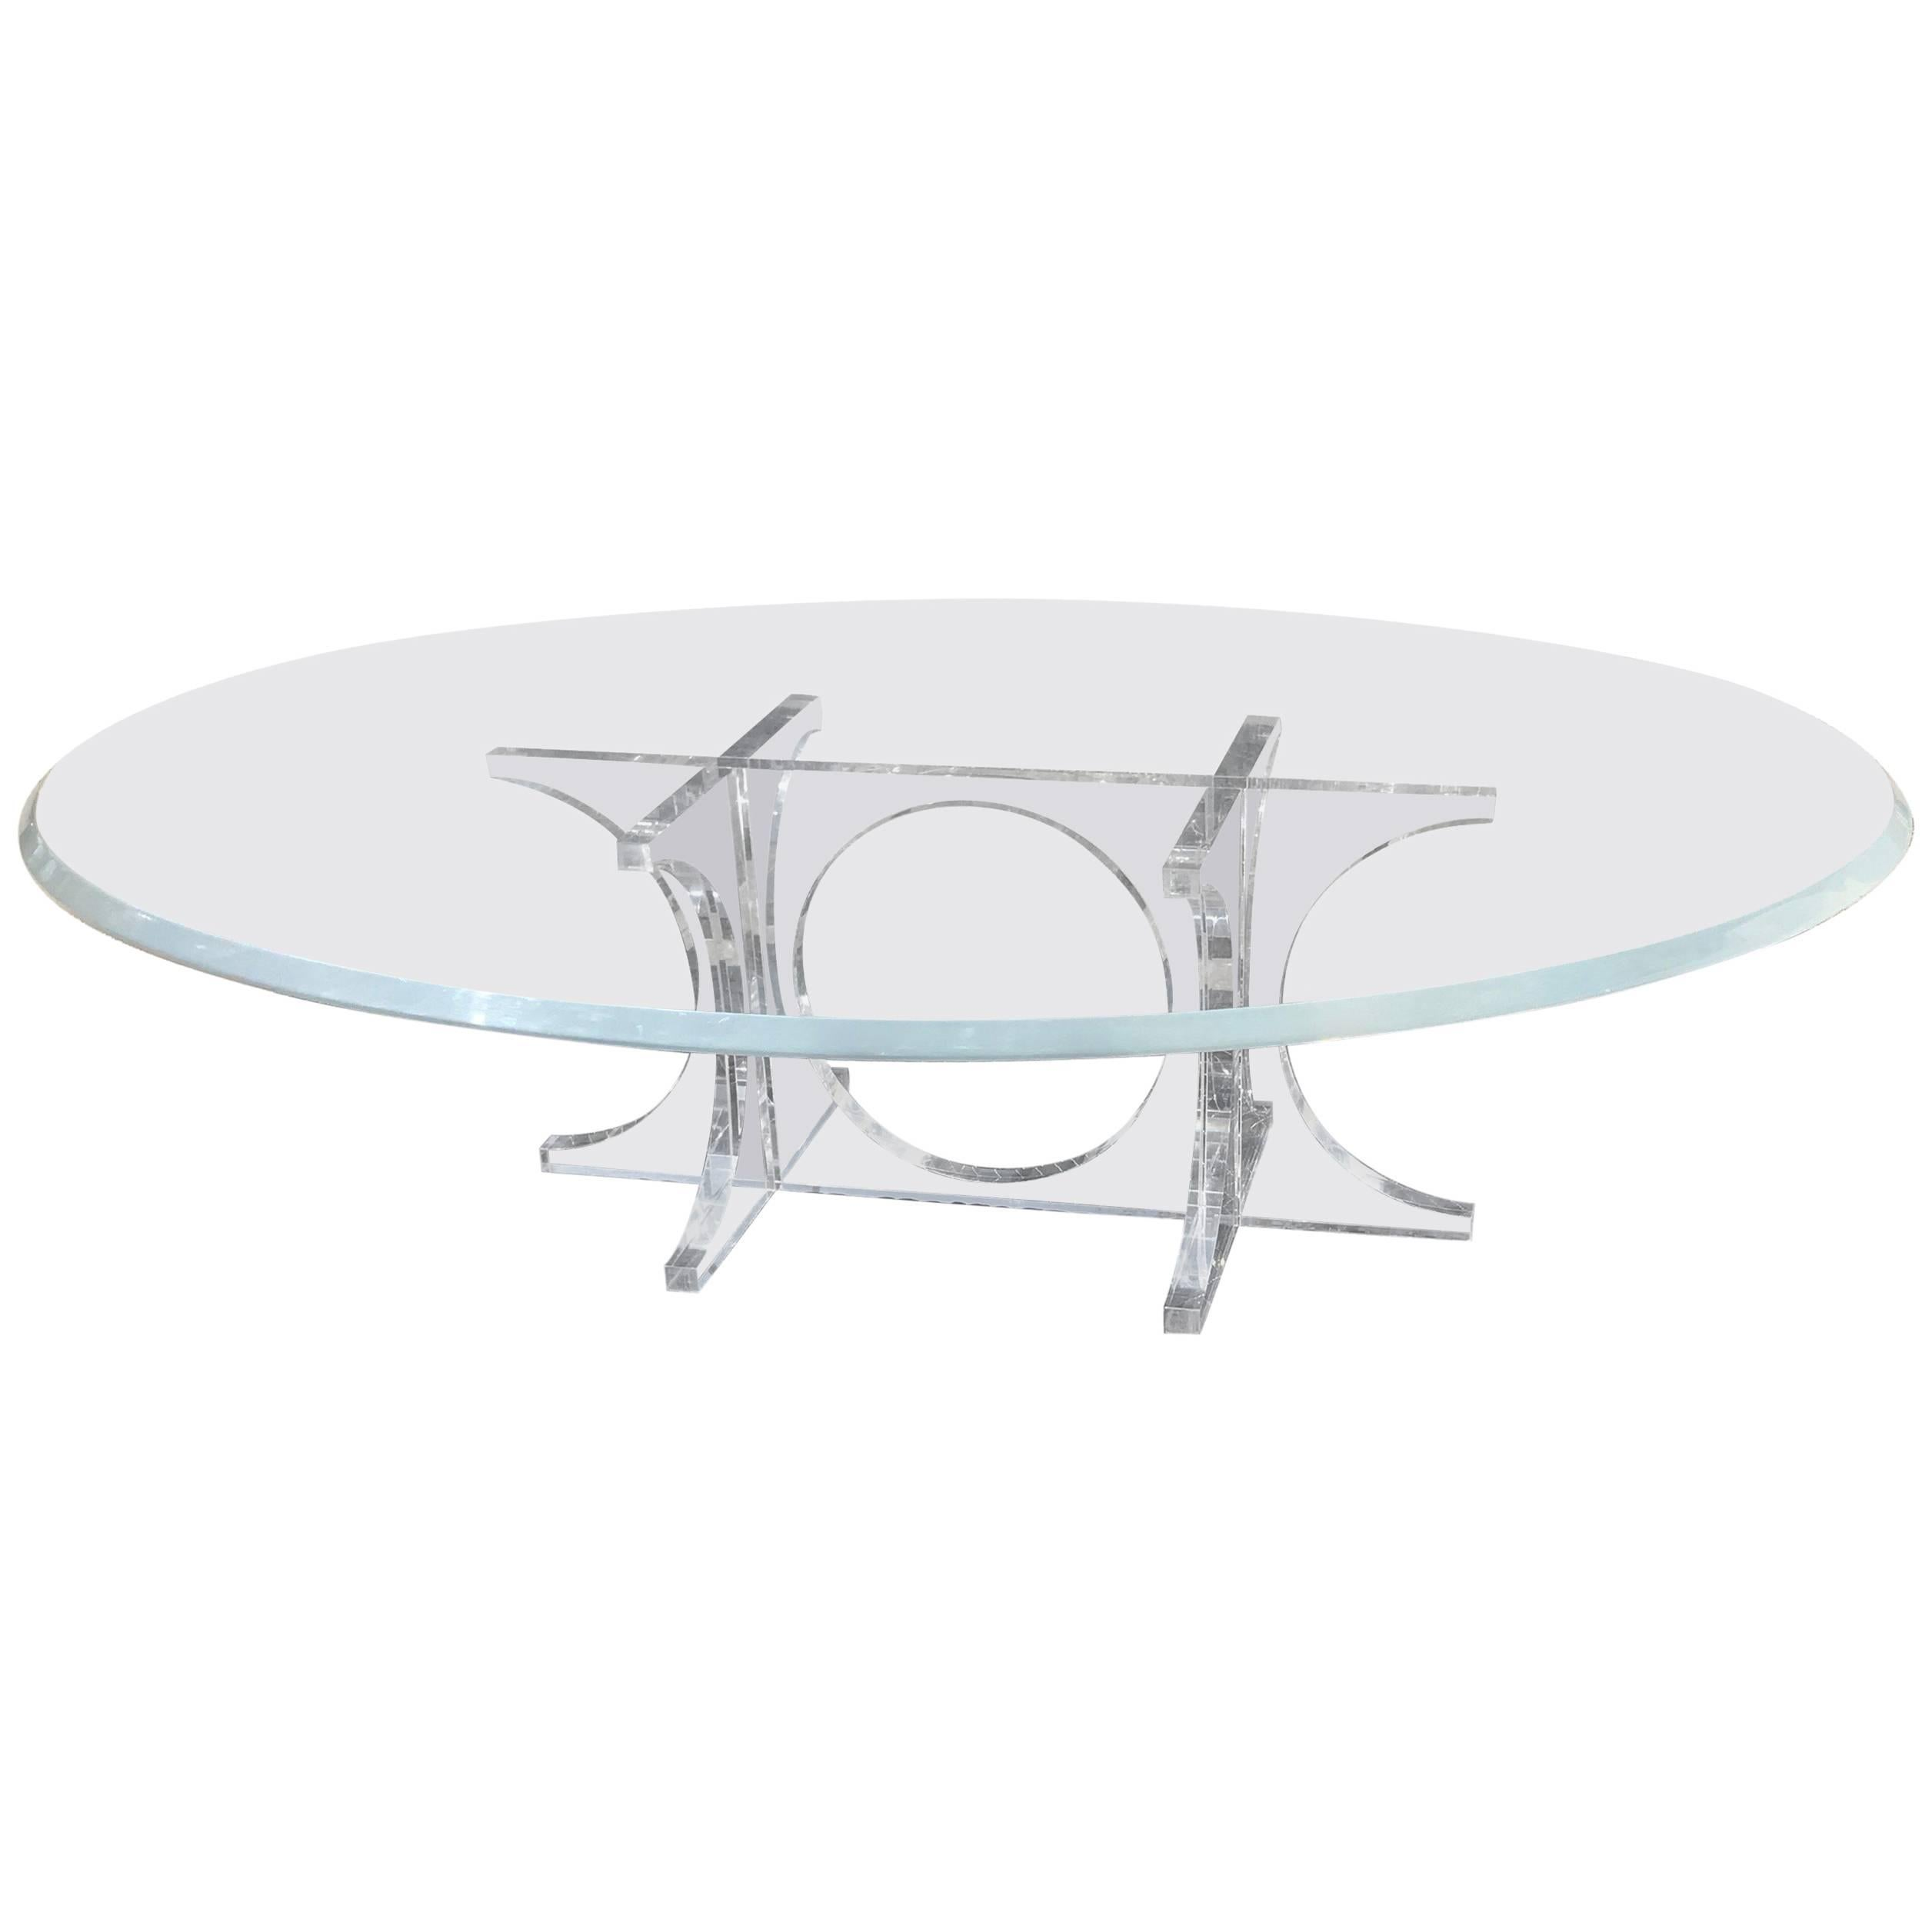 Charmant Monumental Mid Century Modern Oval Lucite Cocktail Table Or Coffee Table  For Sale